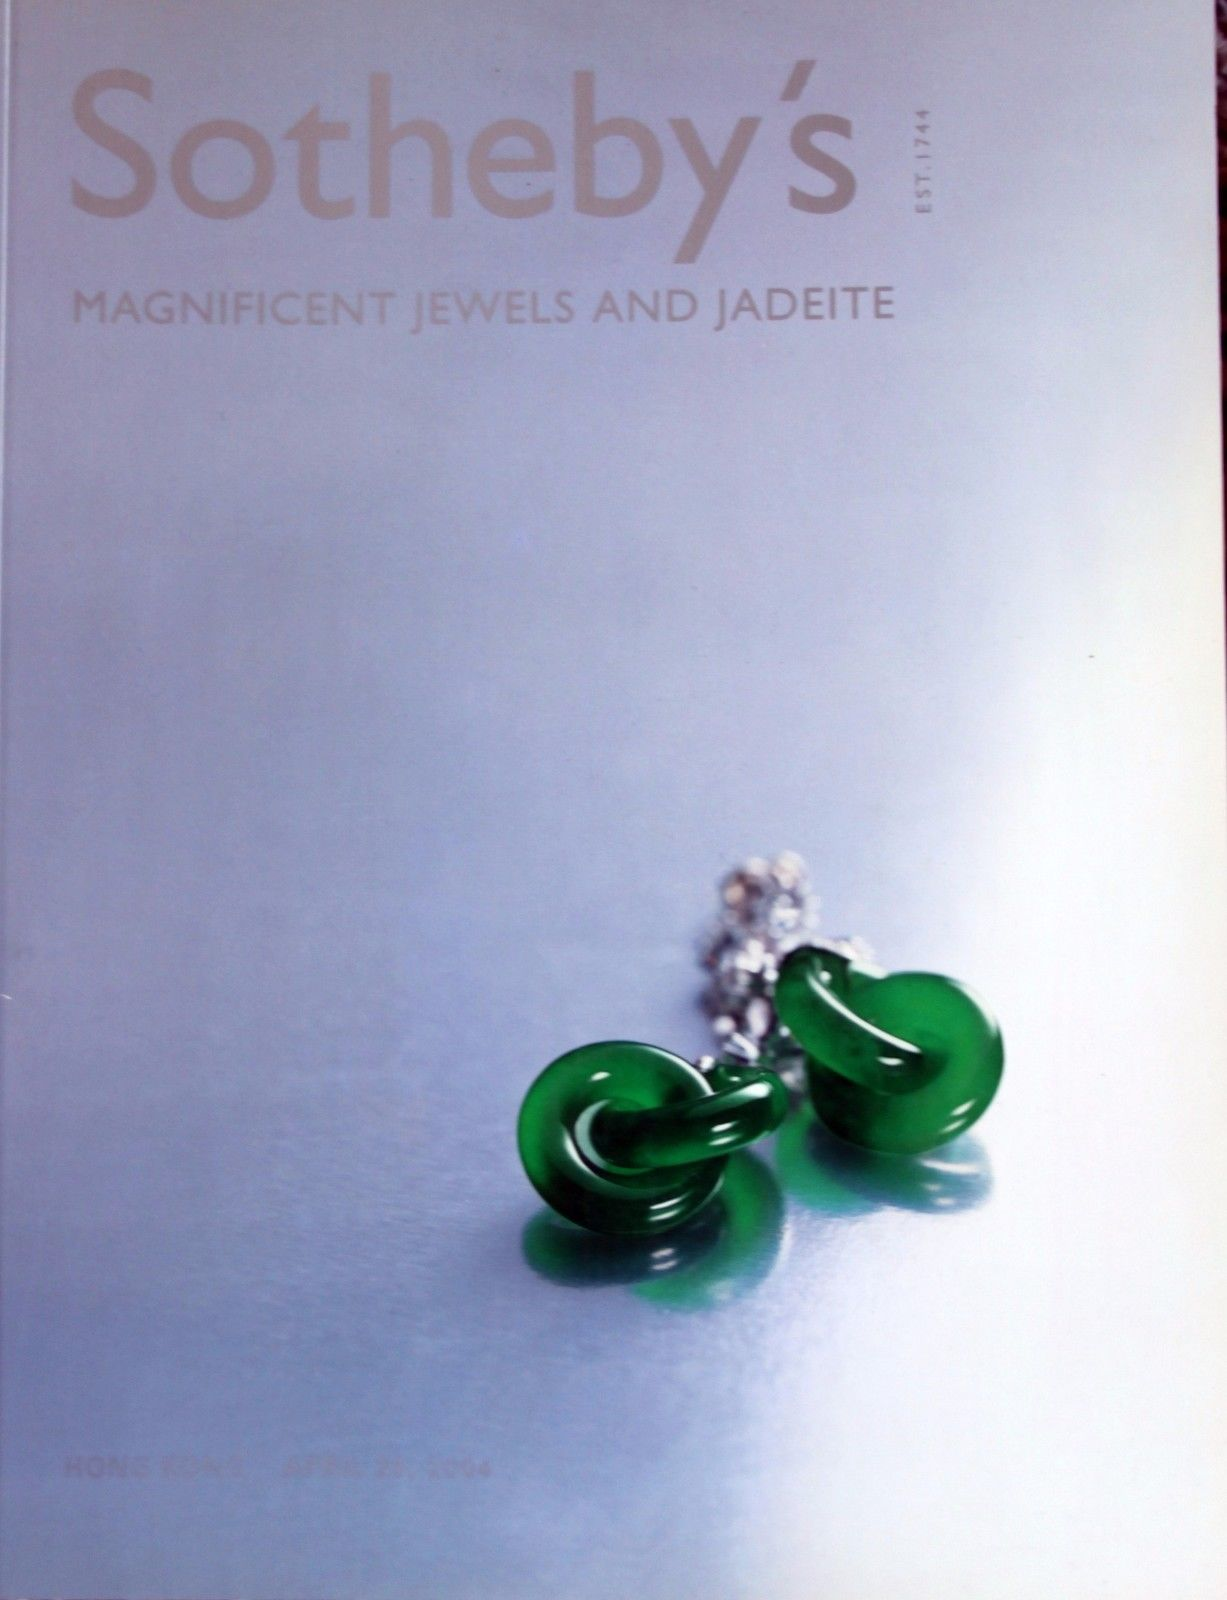 IH SOTHEBYS MAGNIFICENT JEWELS AND JADEITE HONG KONG 4/26 ...